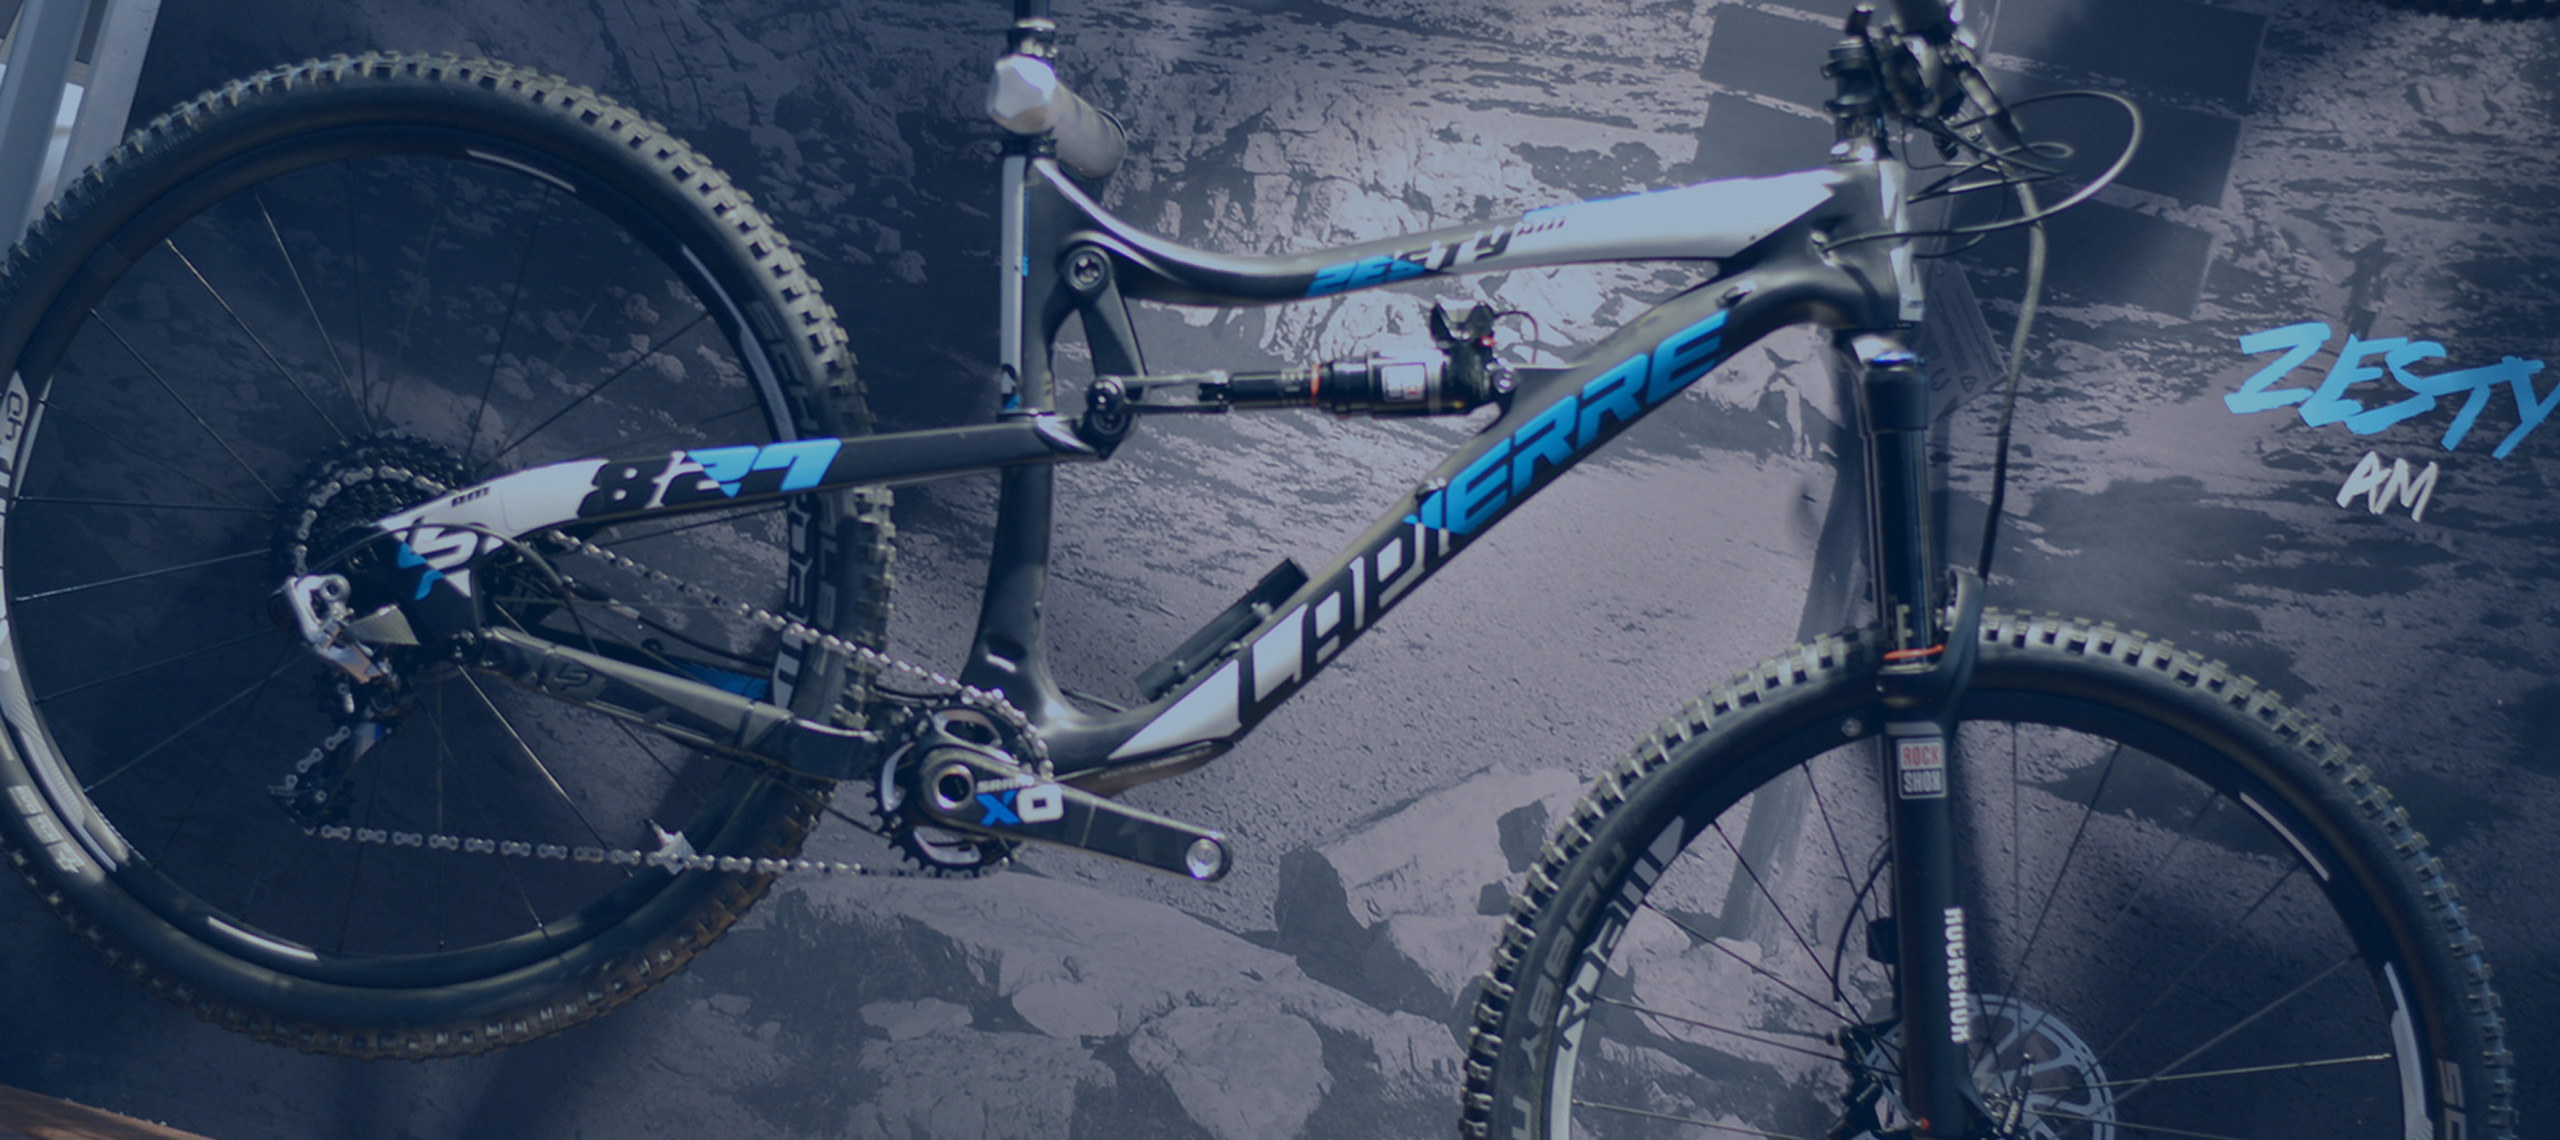 EUROBIKE 2014 – THE LATEST DESIGNS AND TRENDS IN CYCLING MANUFACTURING